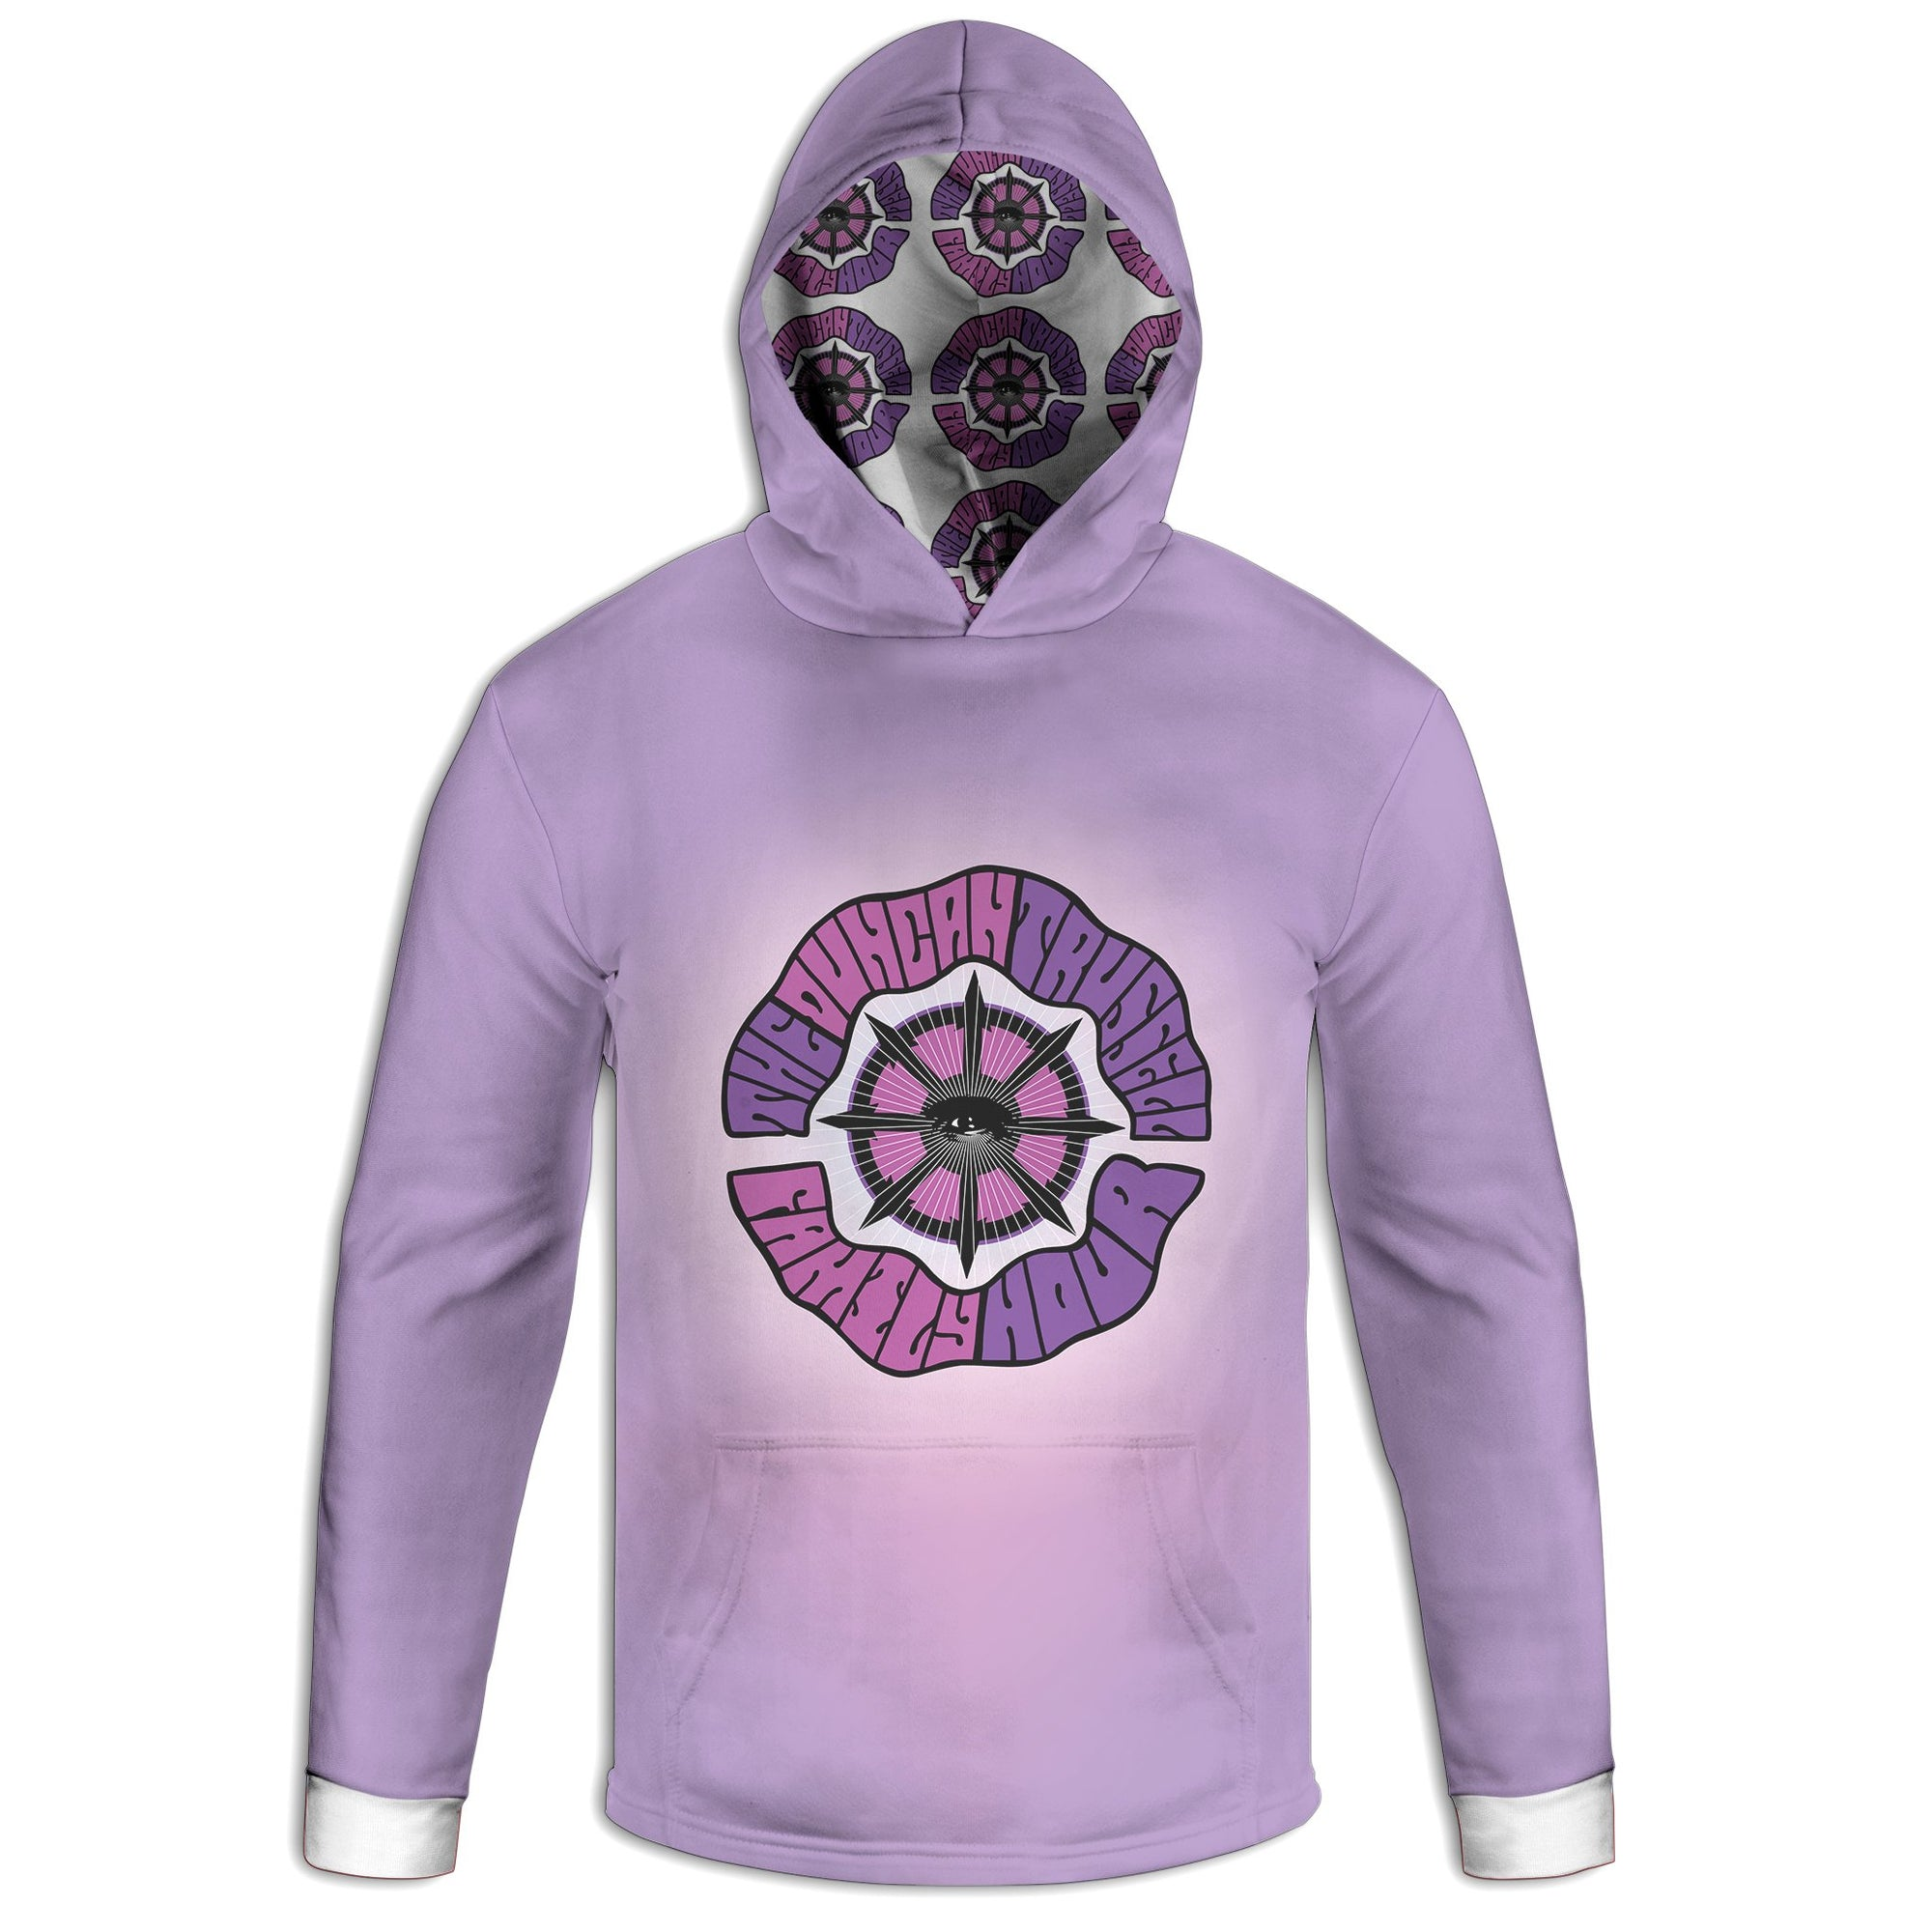 Duncan Trussell Family Hour Hoodie | DuncanTrussell.com